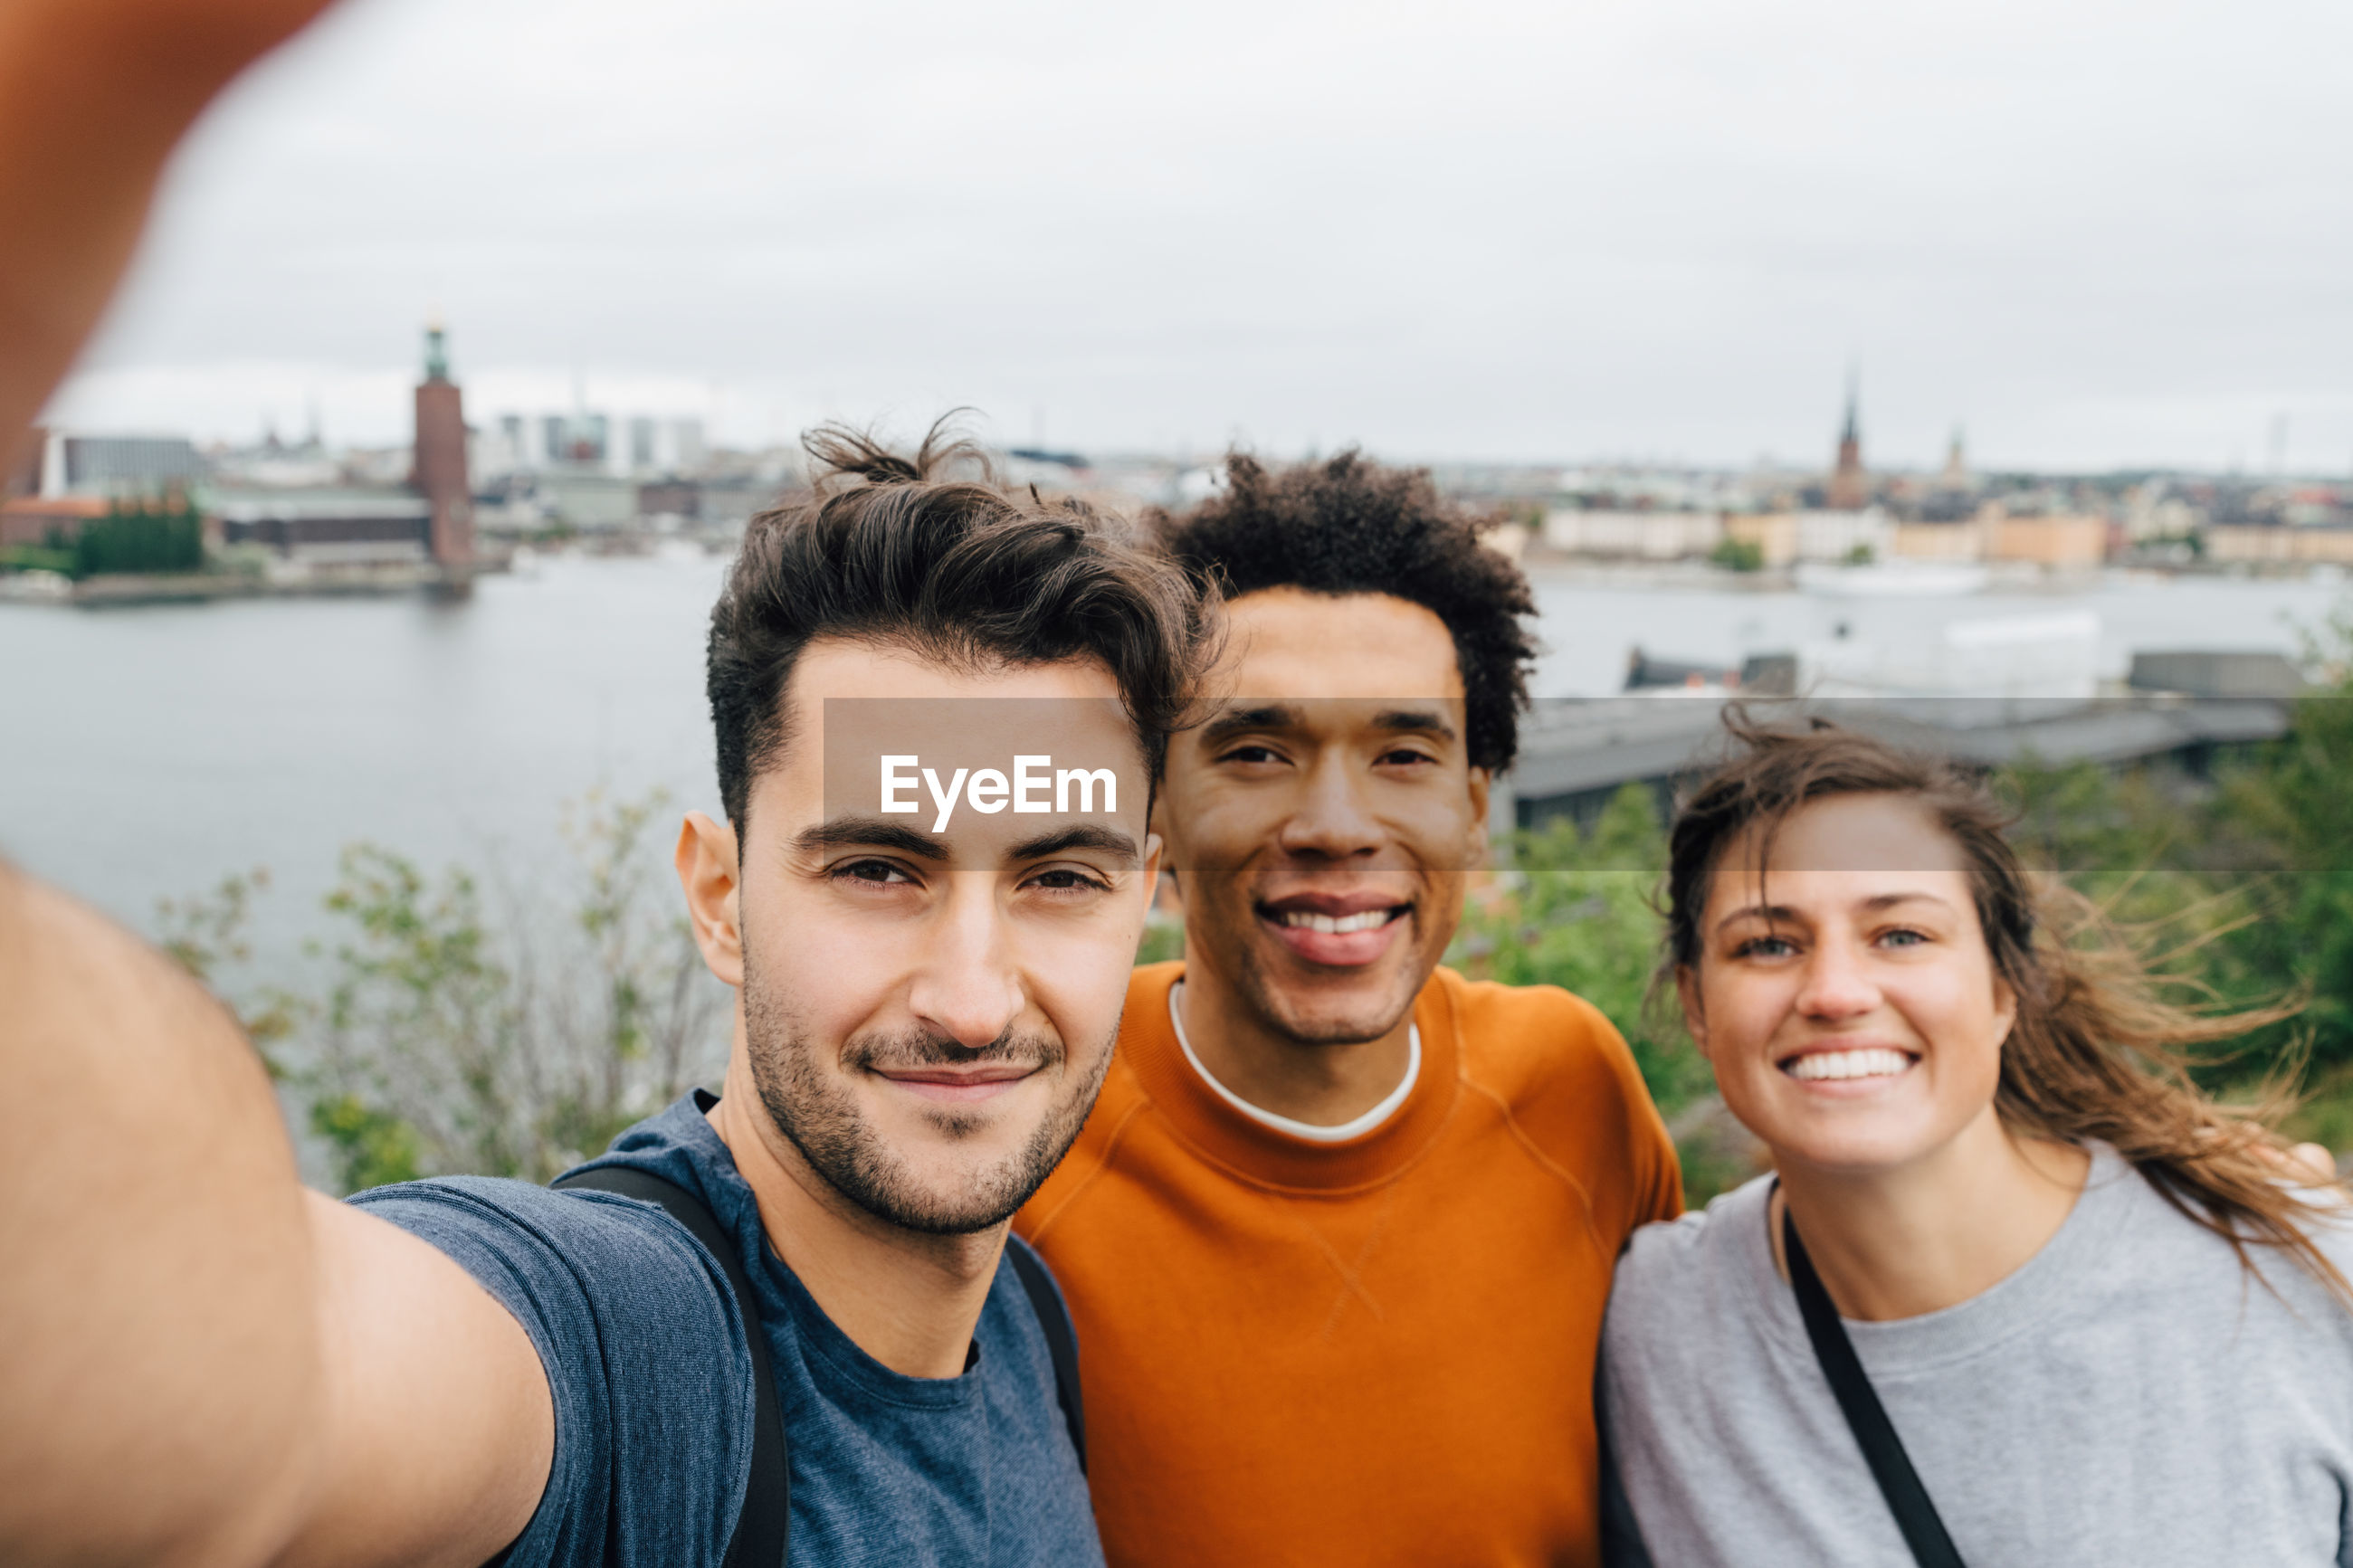 PORTRAIT OF SMILING YOUNG COUPLE IN CITY AT PARK